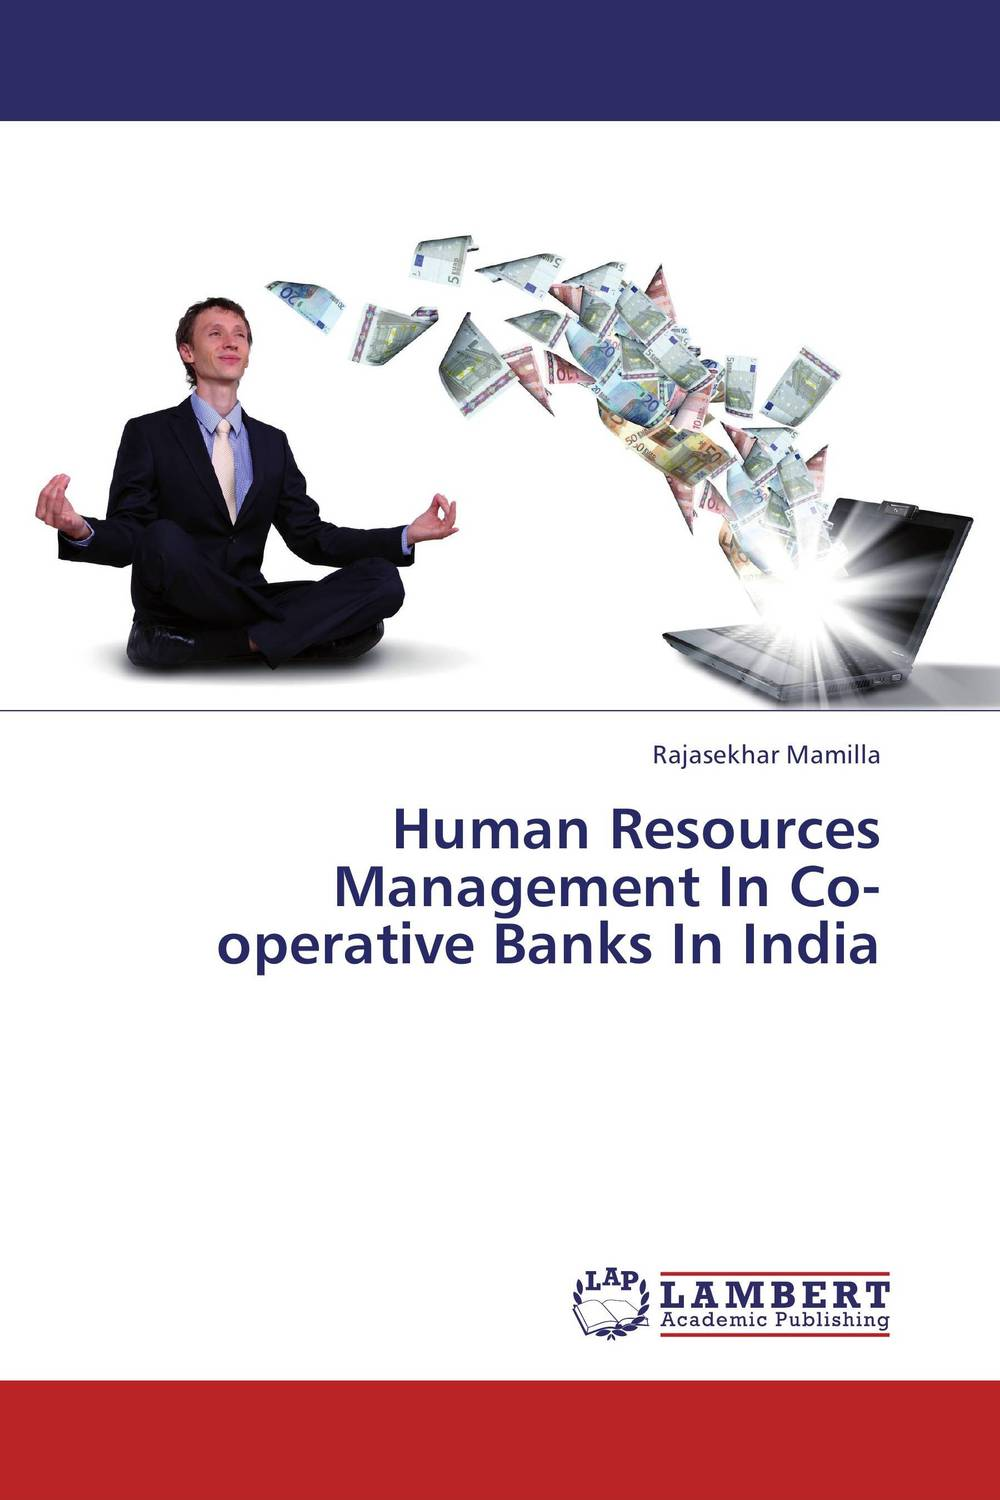 hrm in cooperative banks in india essay